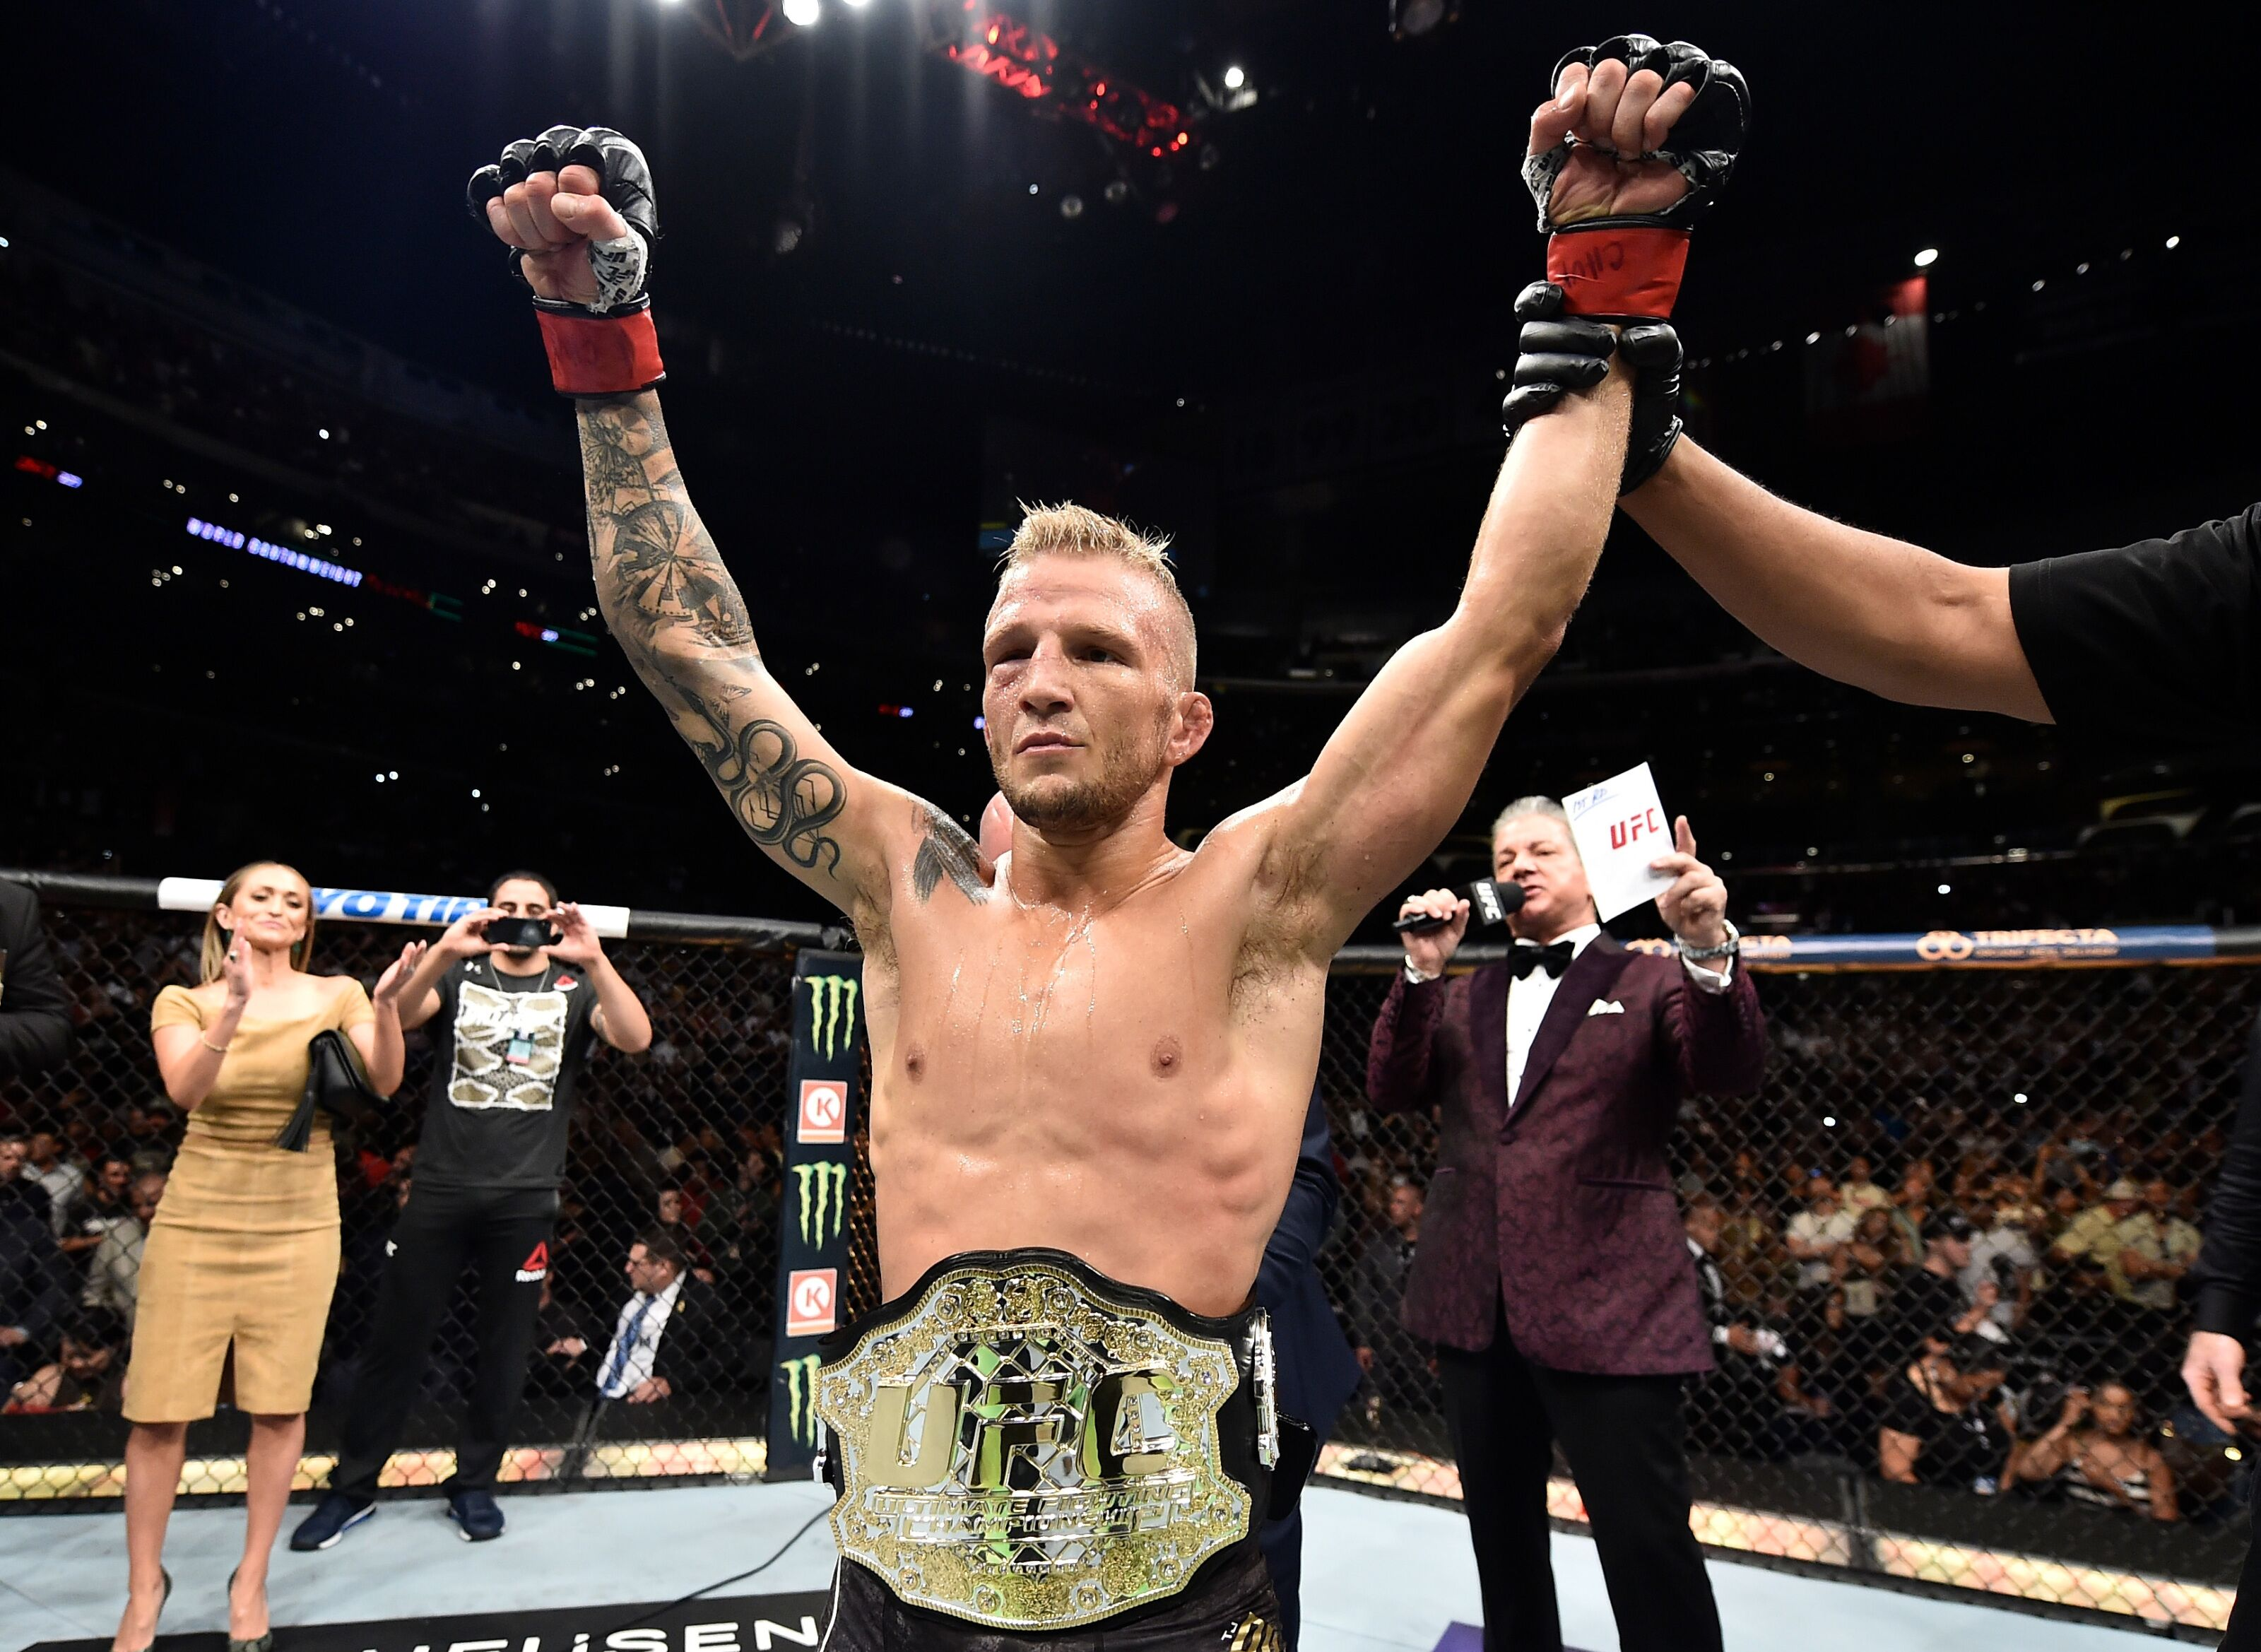 LOS ANGELES, CA - AUGUST 04: TJ Dillashaw celebrates after his knockout victory over Cody Garbrandt in their UFC bantamweight championship fight during the UFC 227 event inside Staples Center on August 4, 2018 in Los Angeles, California. (Photo by Jeff Bottari/Zuffa LLC/Zuffa LLC via Getty Images)